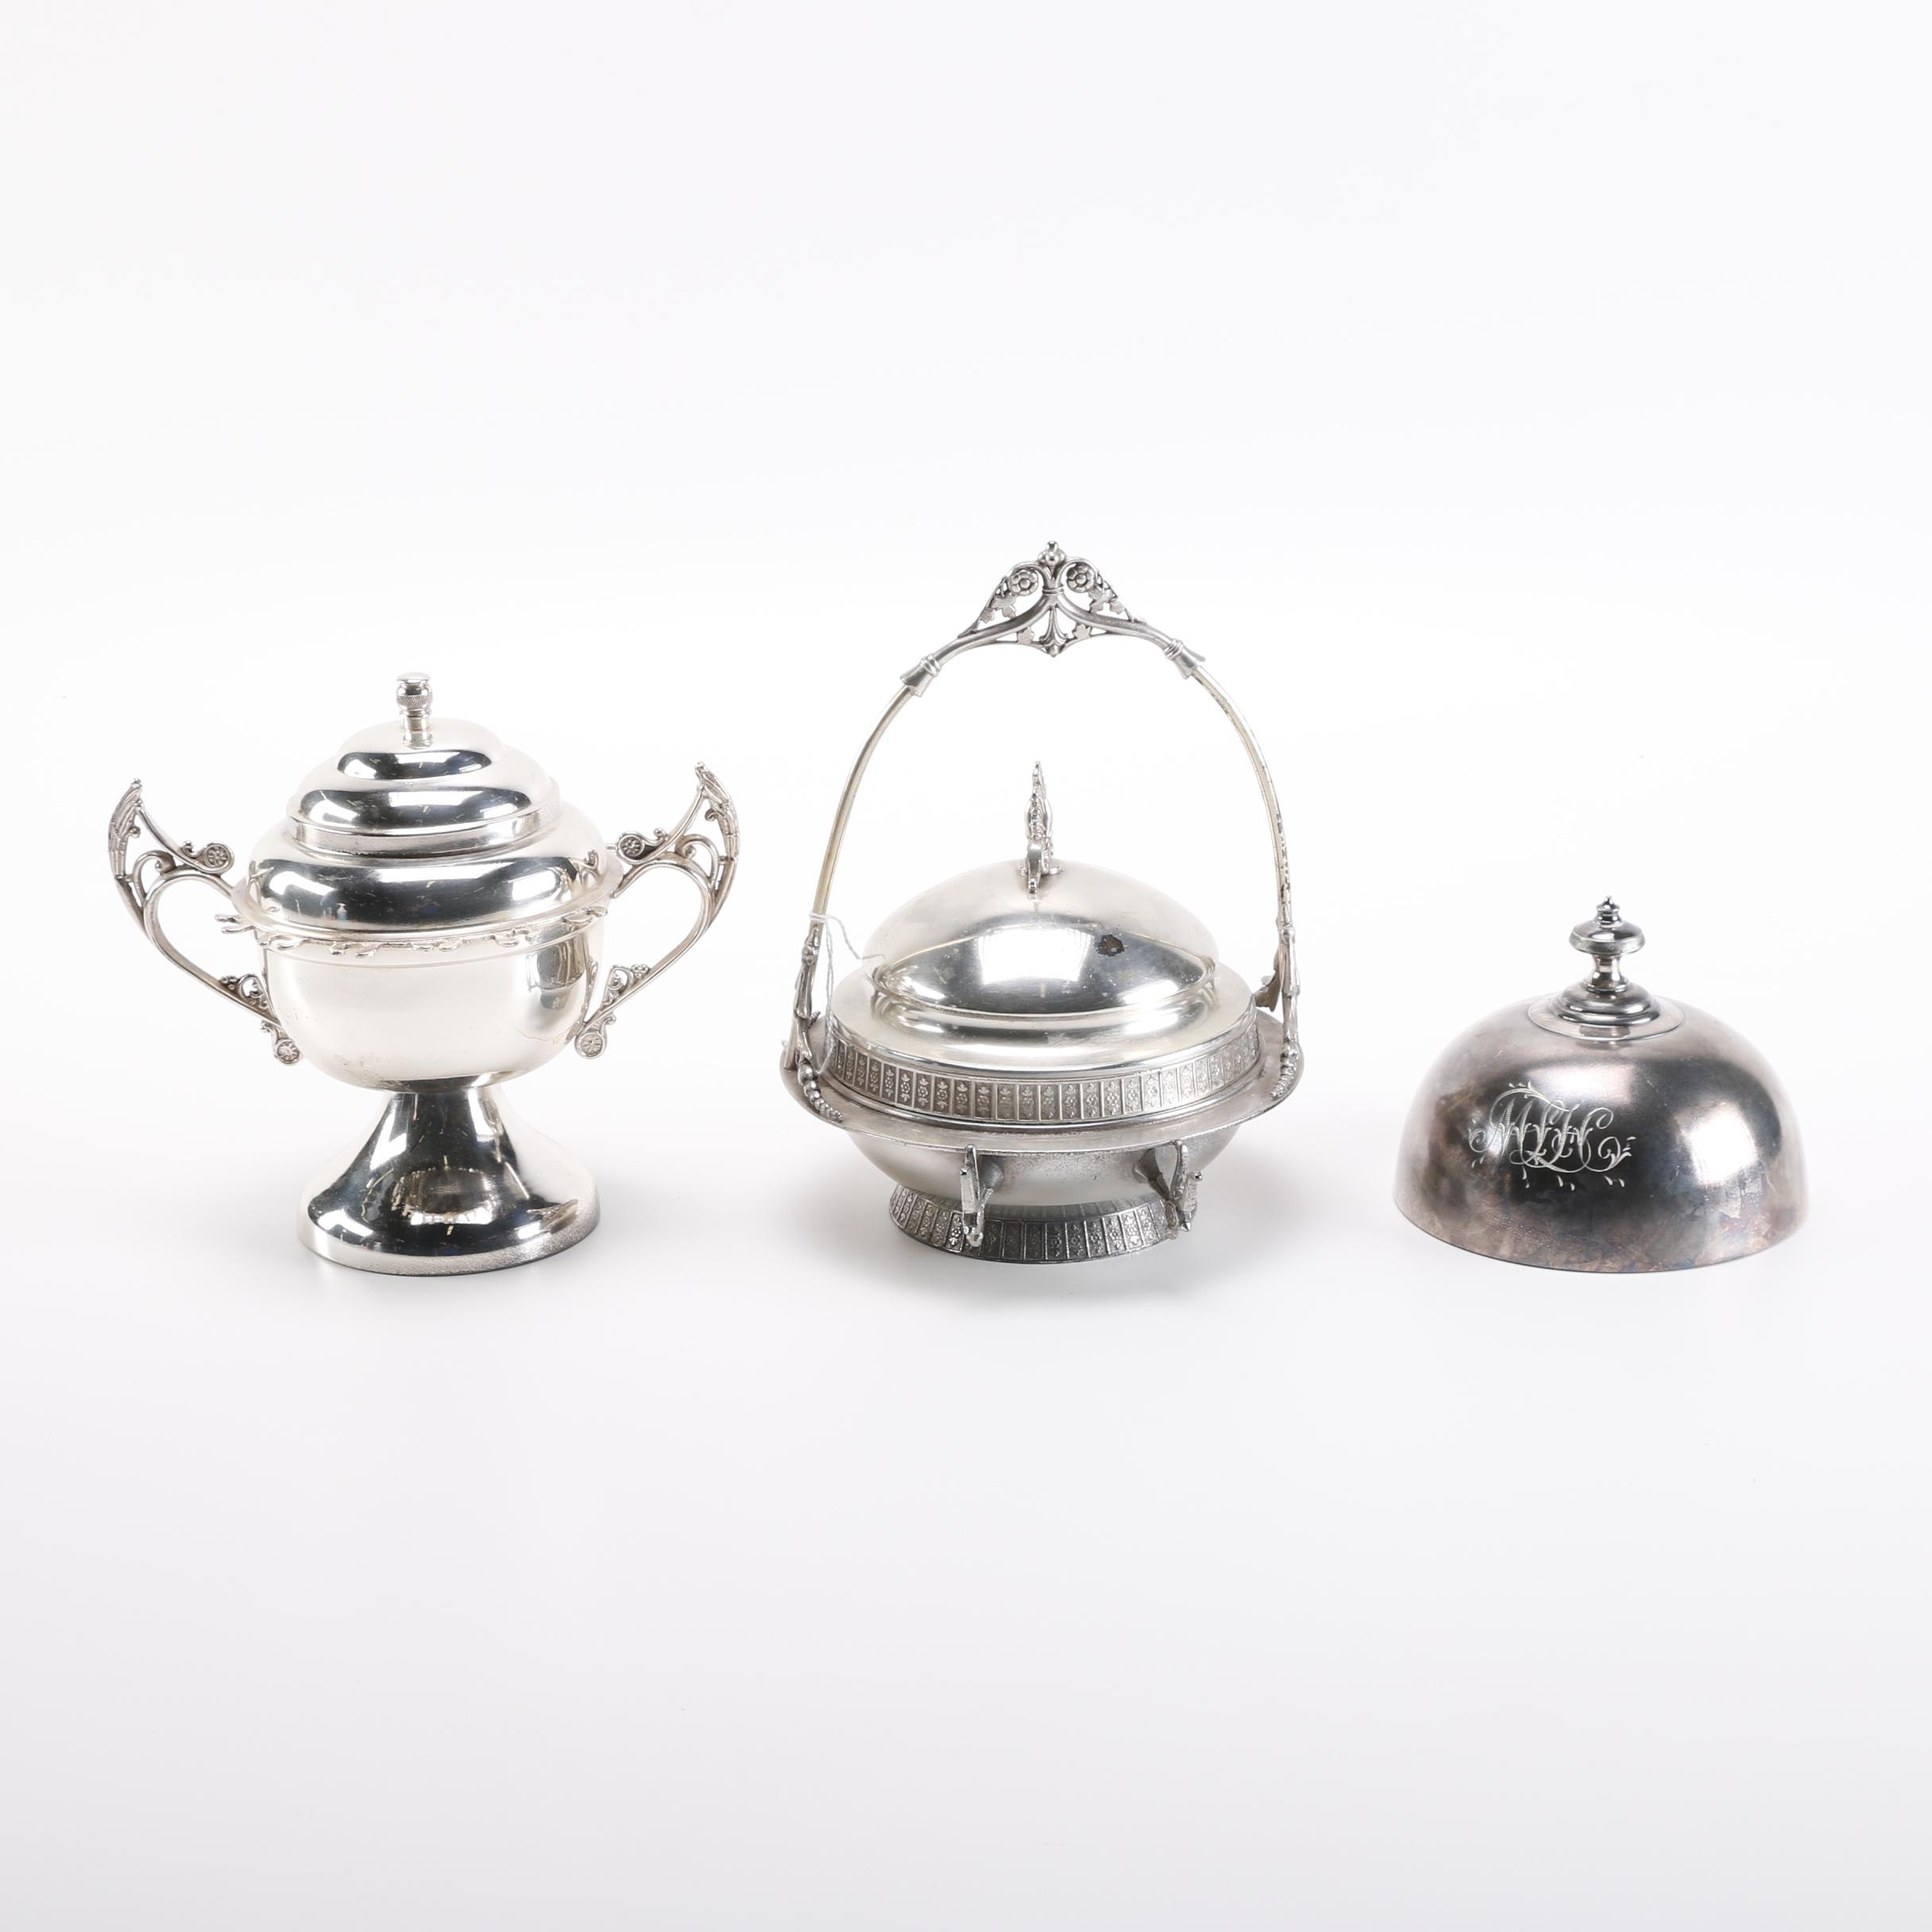 Simpson, Hall, Miller & Co. and Other Silver Plate Servingware